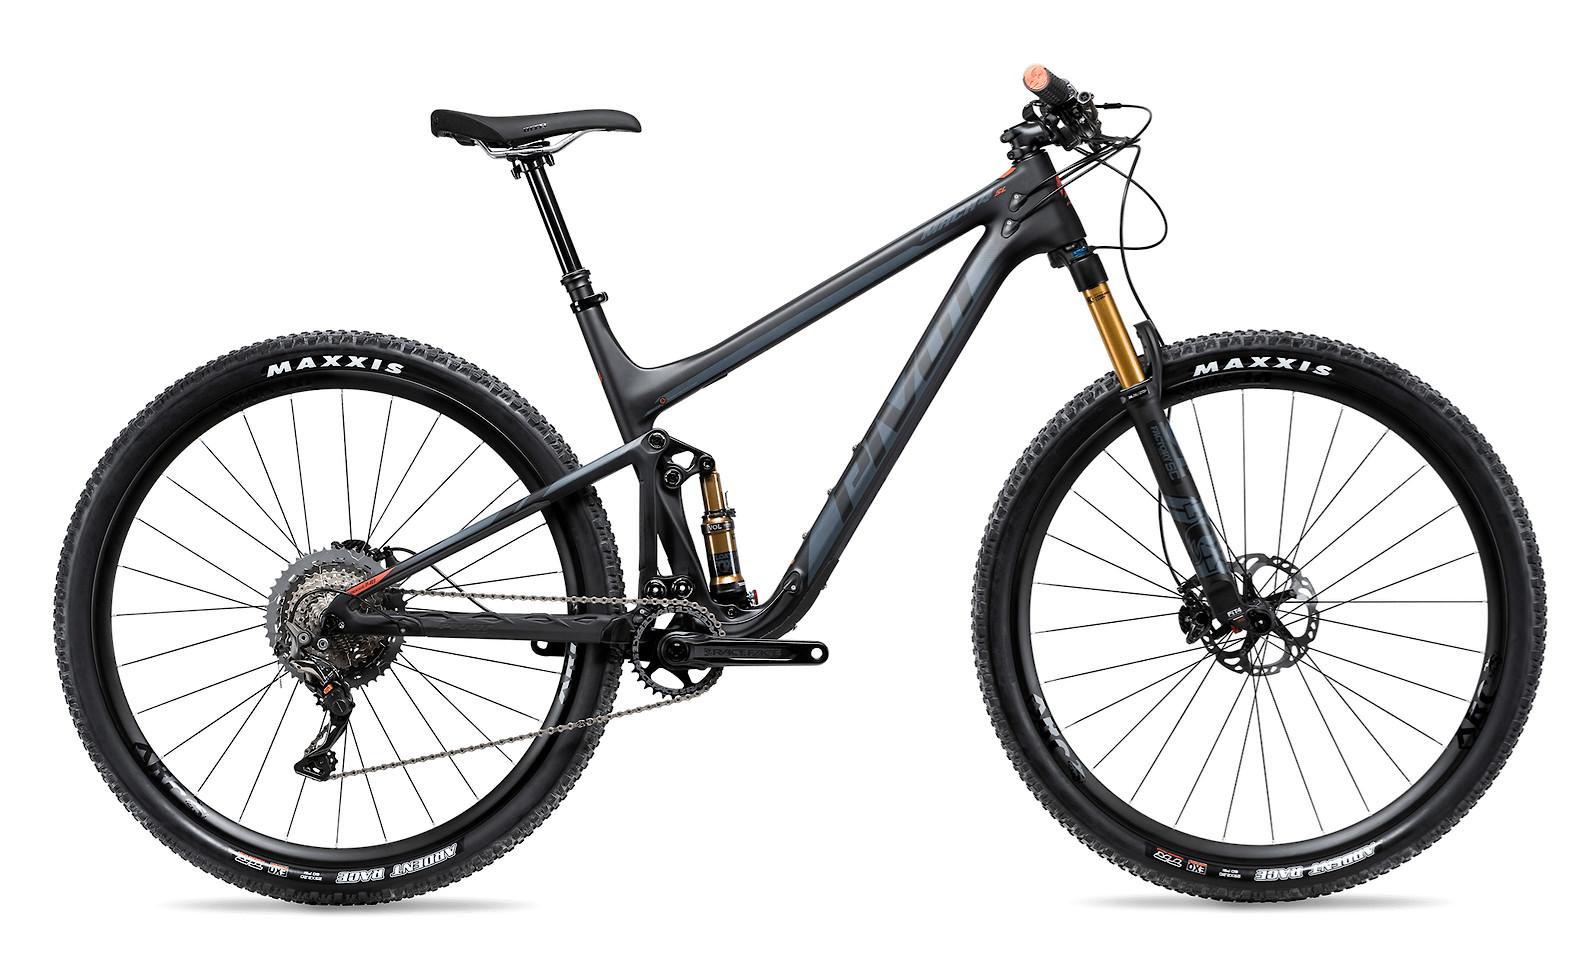 2020 Pivot Mach 4 SL in Stealth (Pro XT/XTR model pictured)